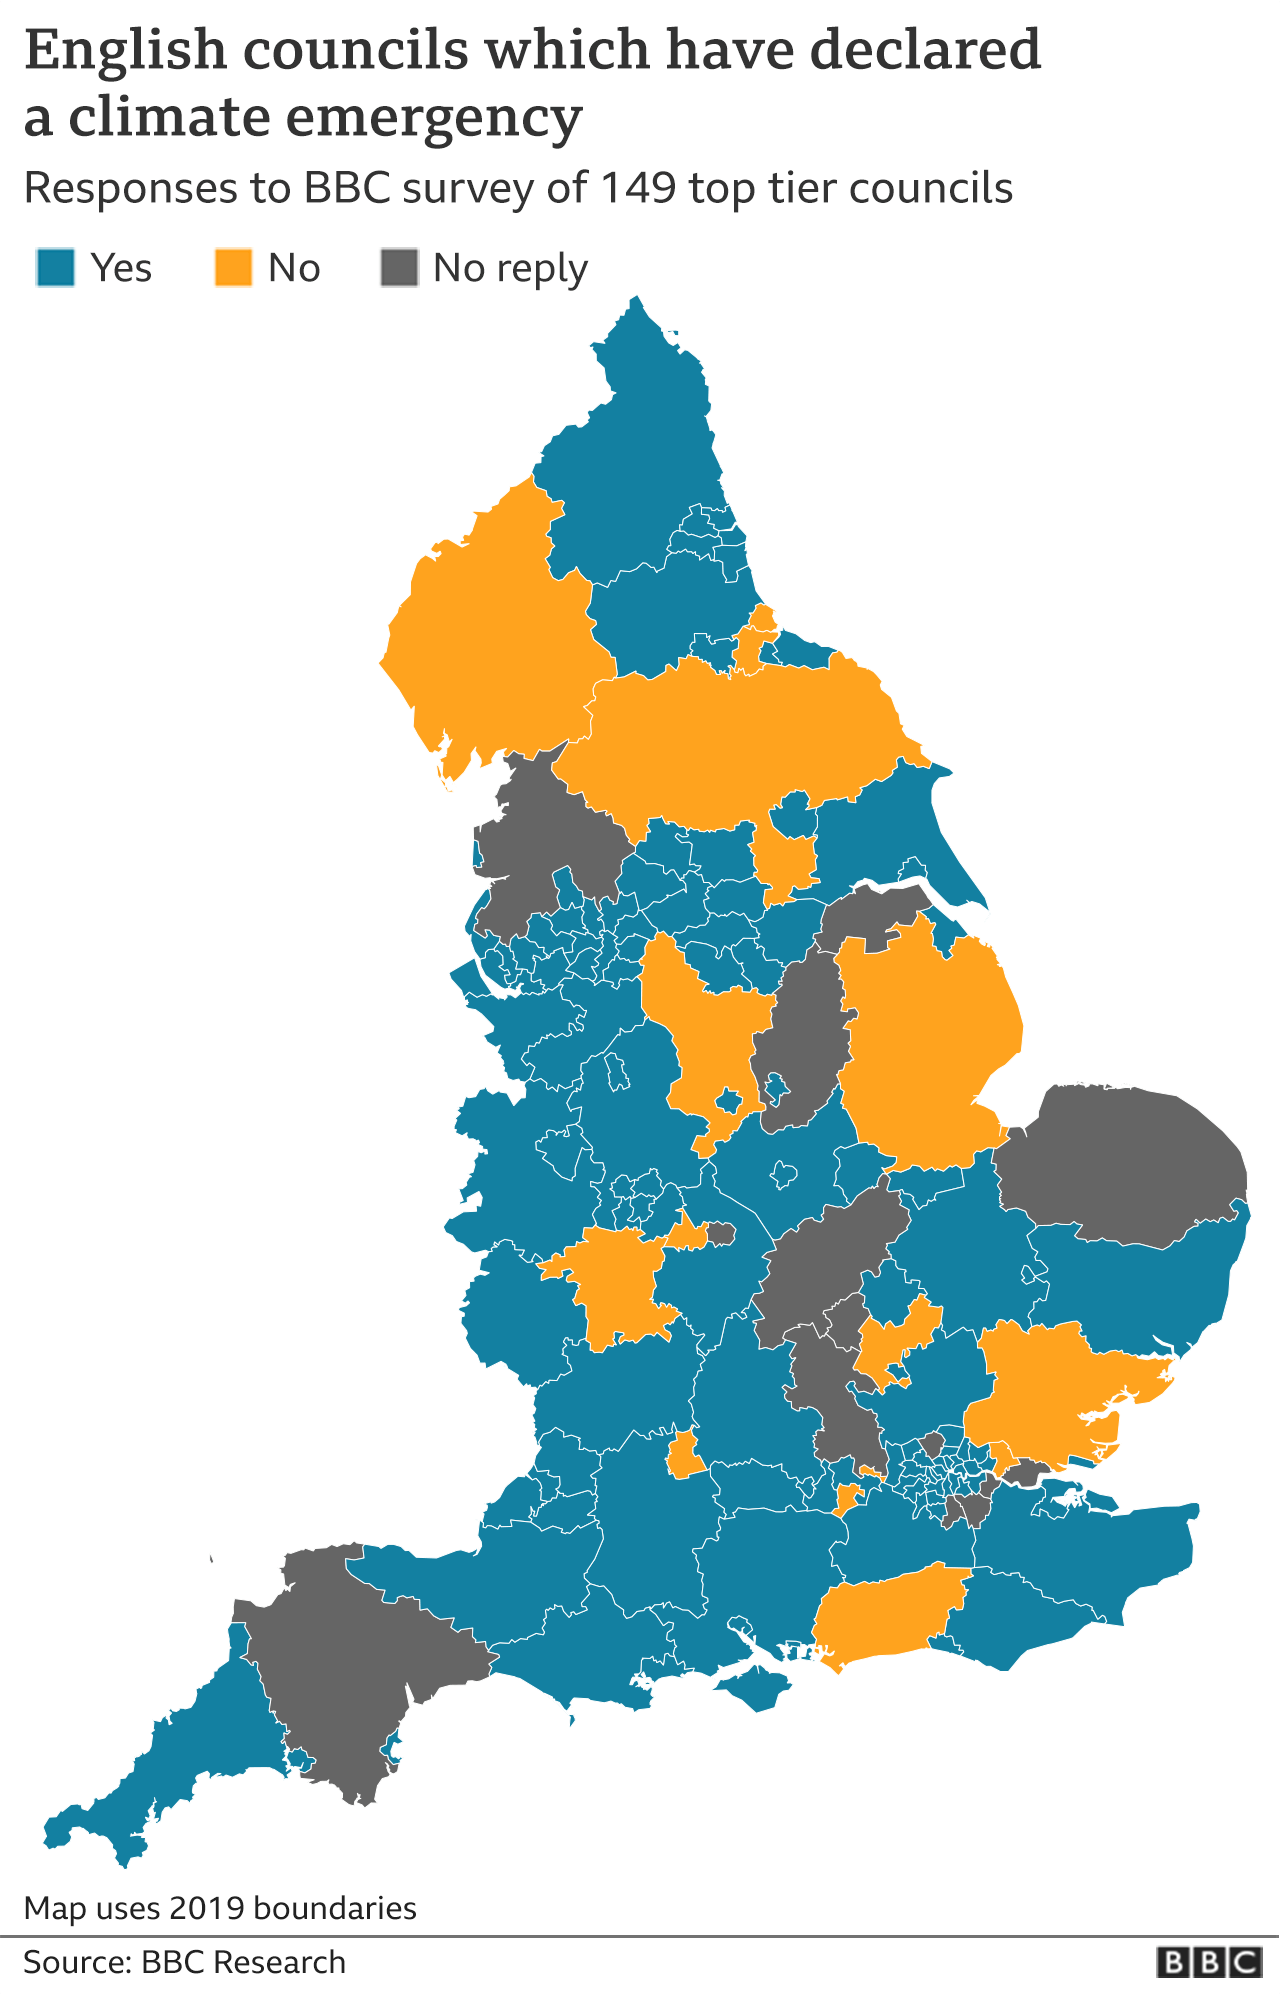 Map showing English councils which have declared a climate emergency